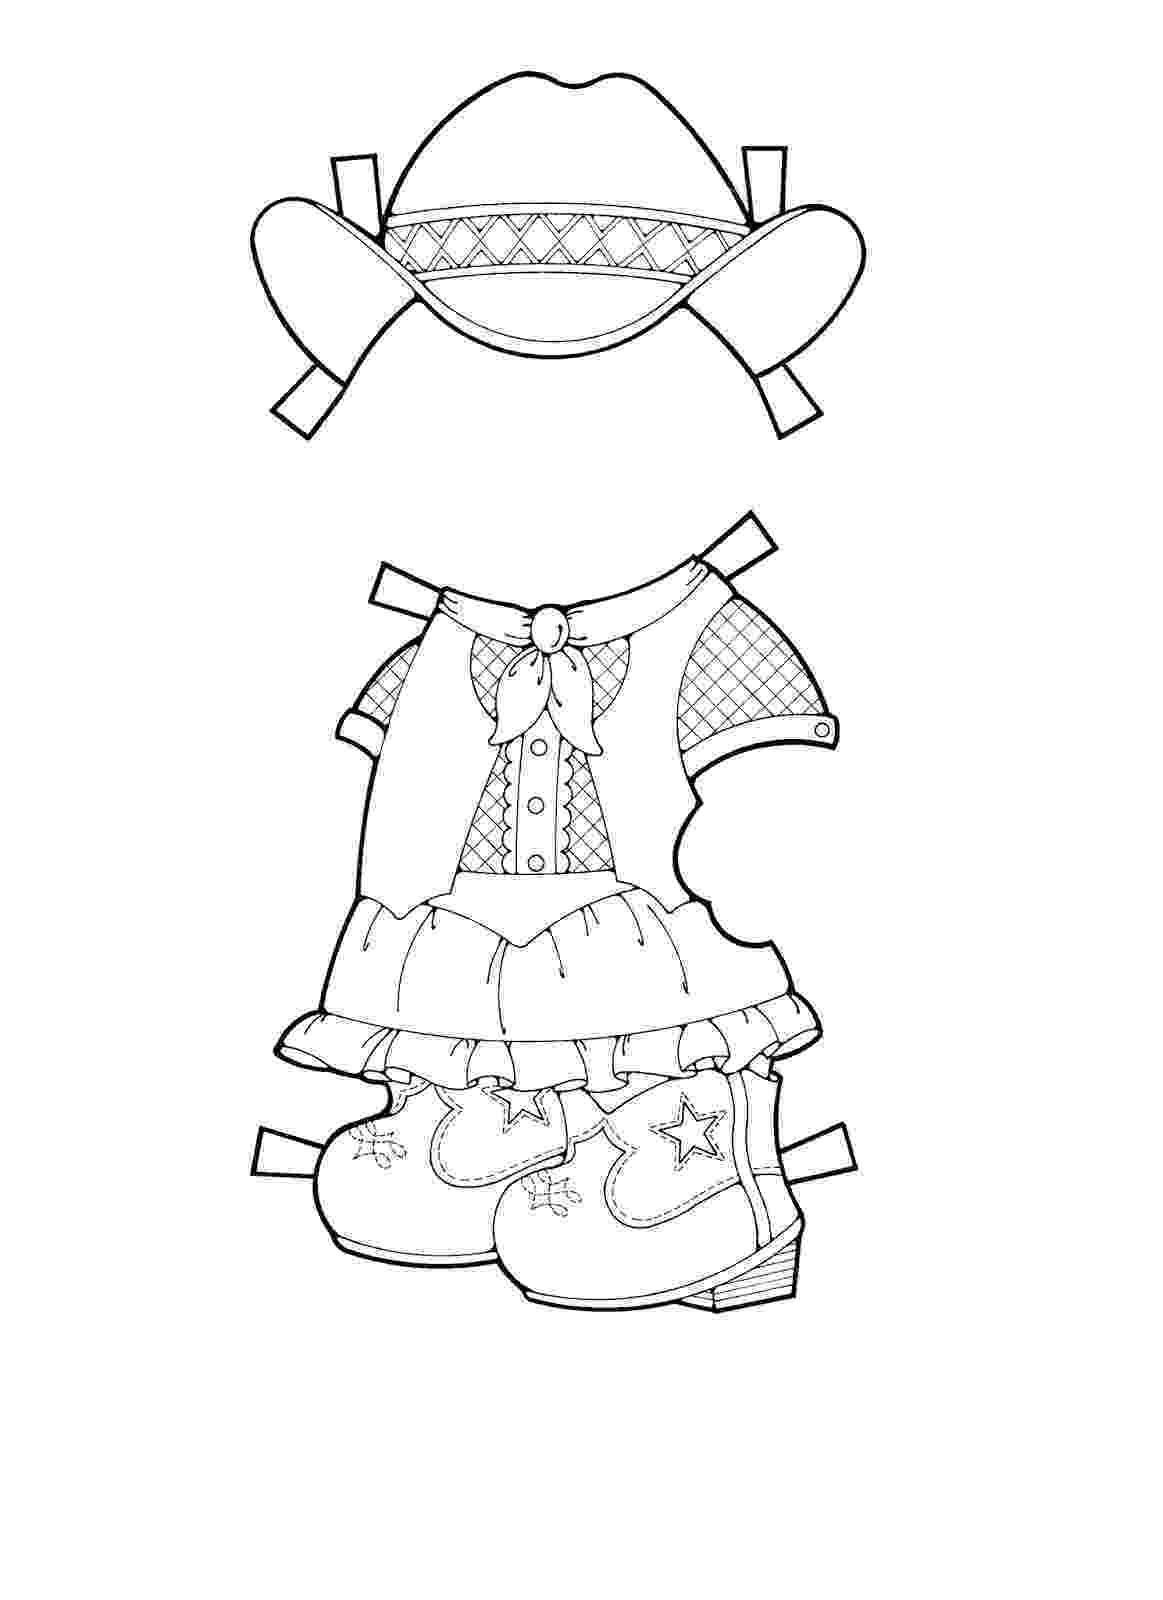 teddy bear paper dolls mostly paper dolls too time for cowboys huggs and paper teddy bear dolls